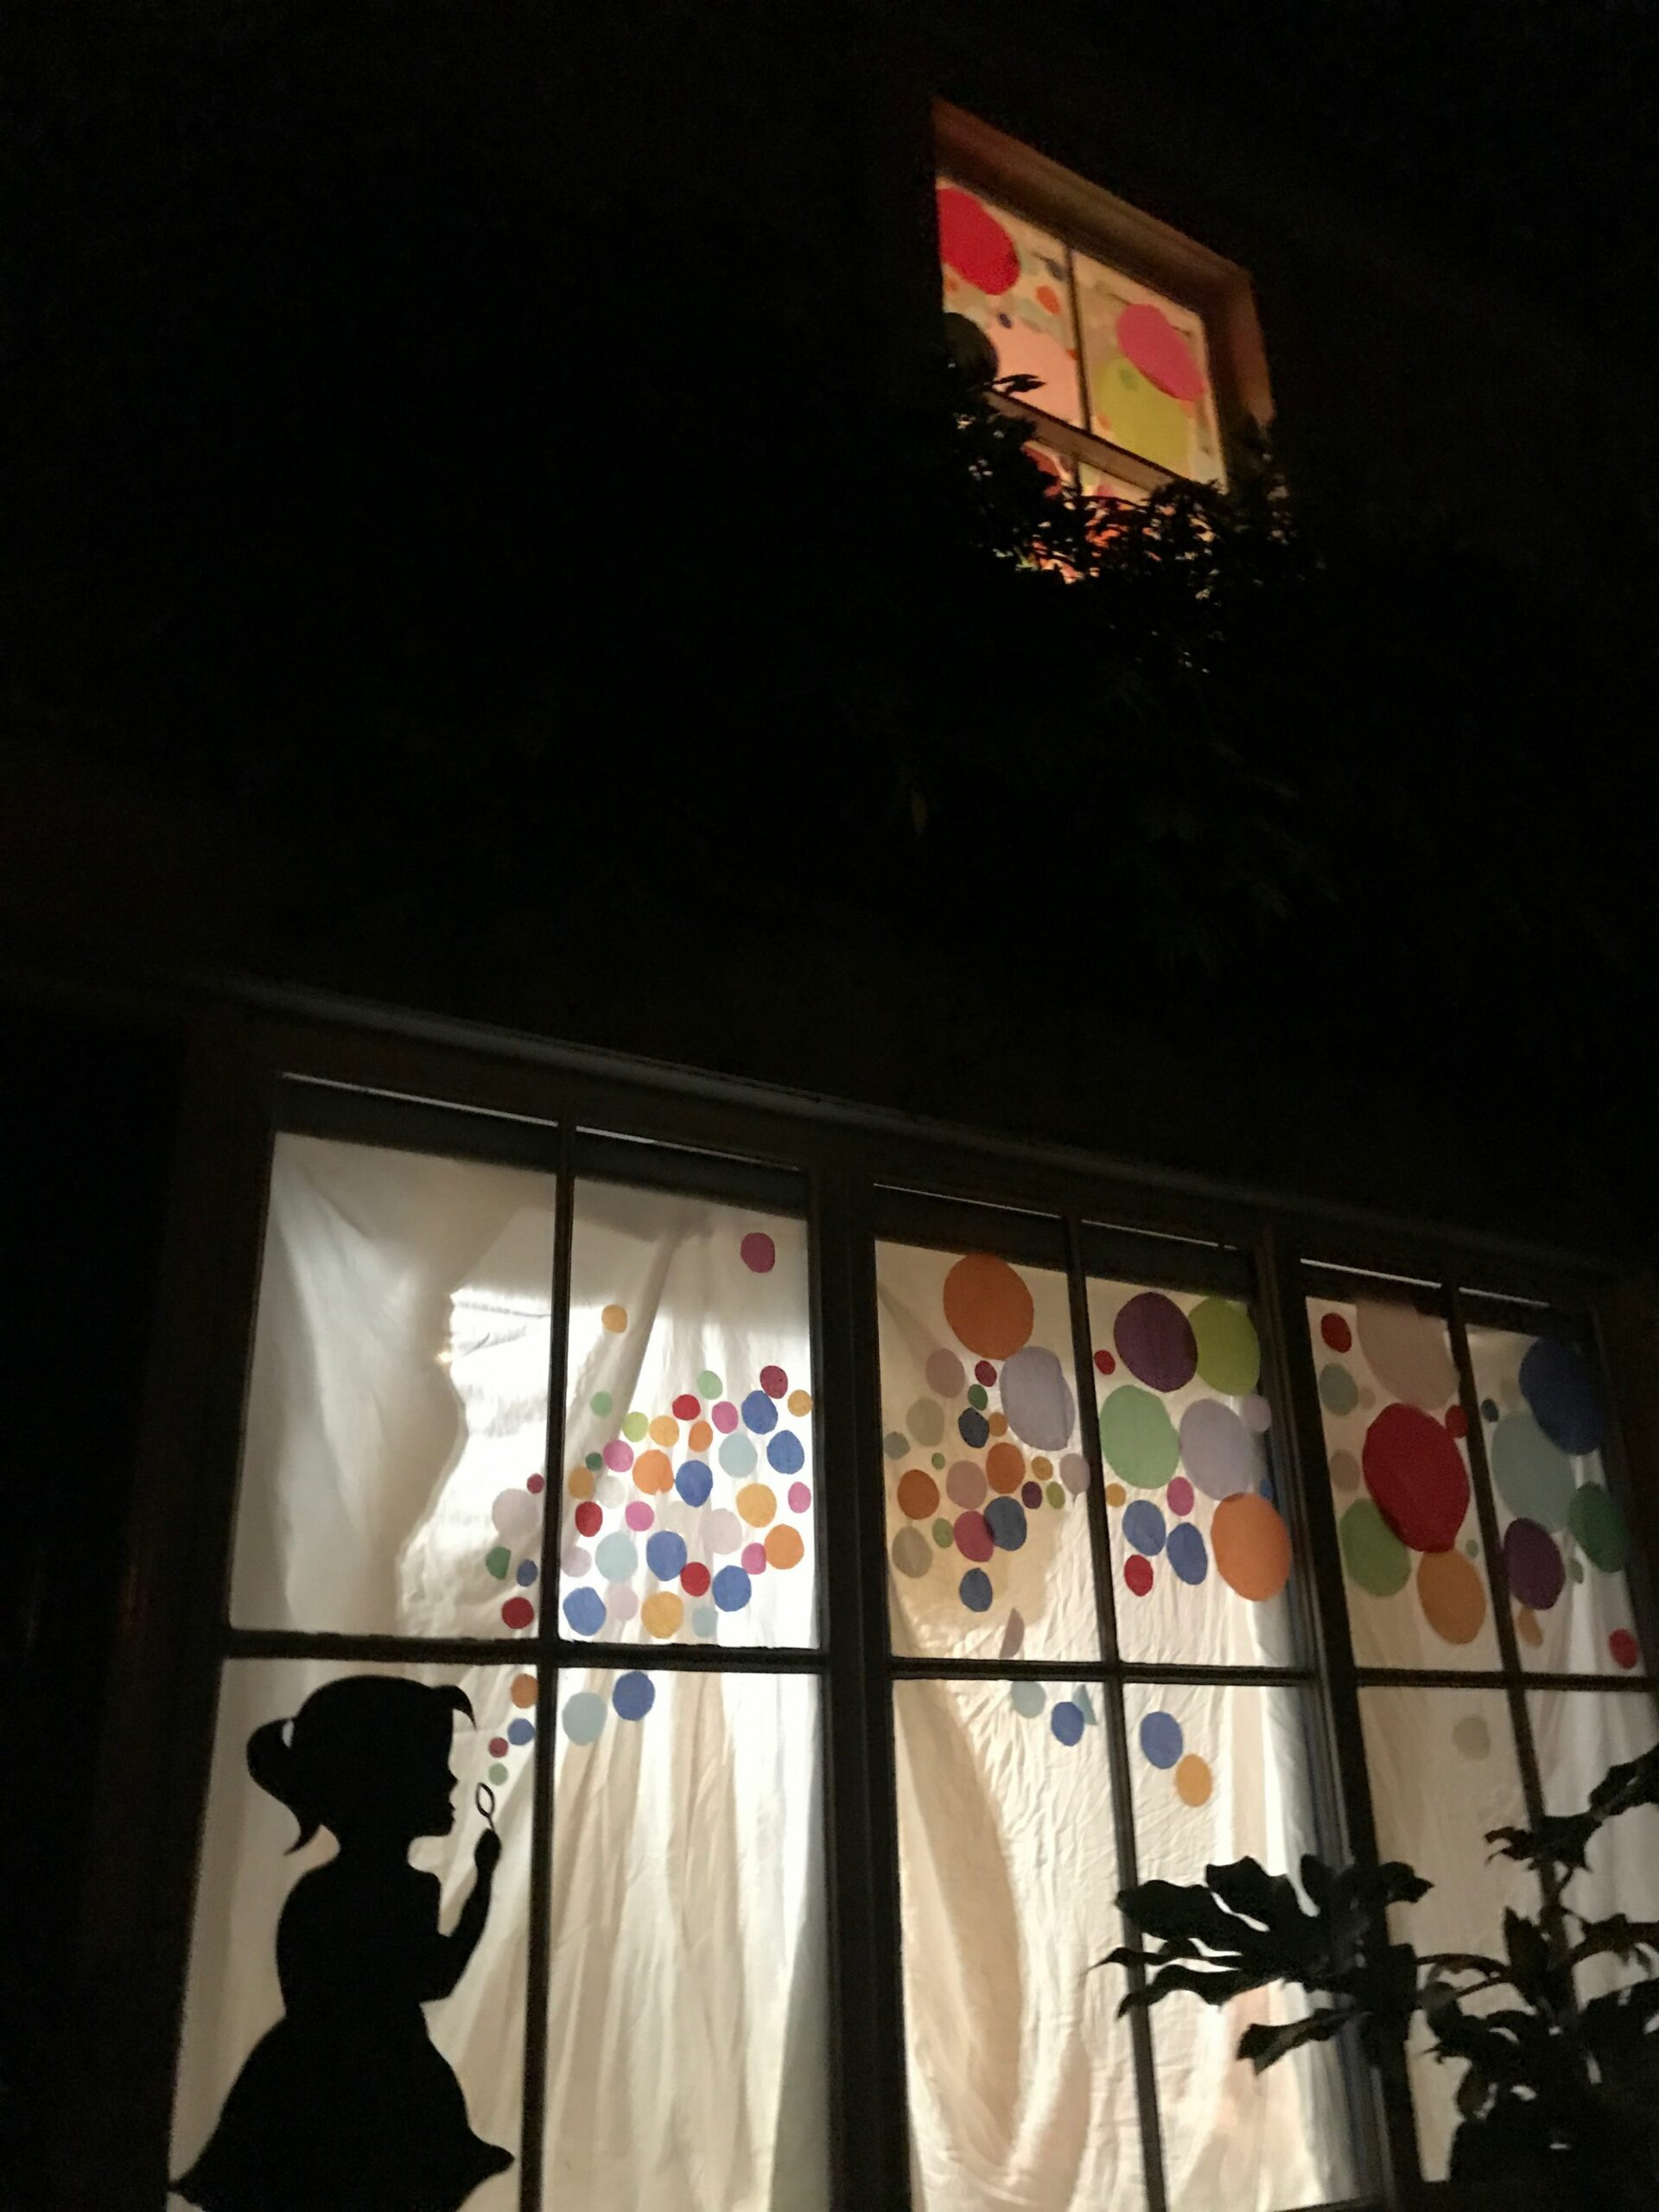 Window Wanderland | The Sherston Arts Festival - window wanderland ideas